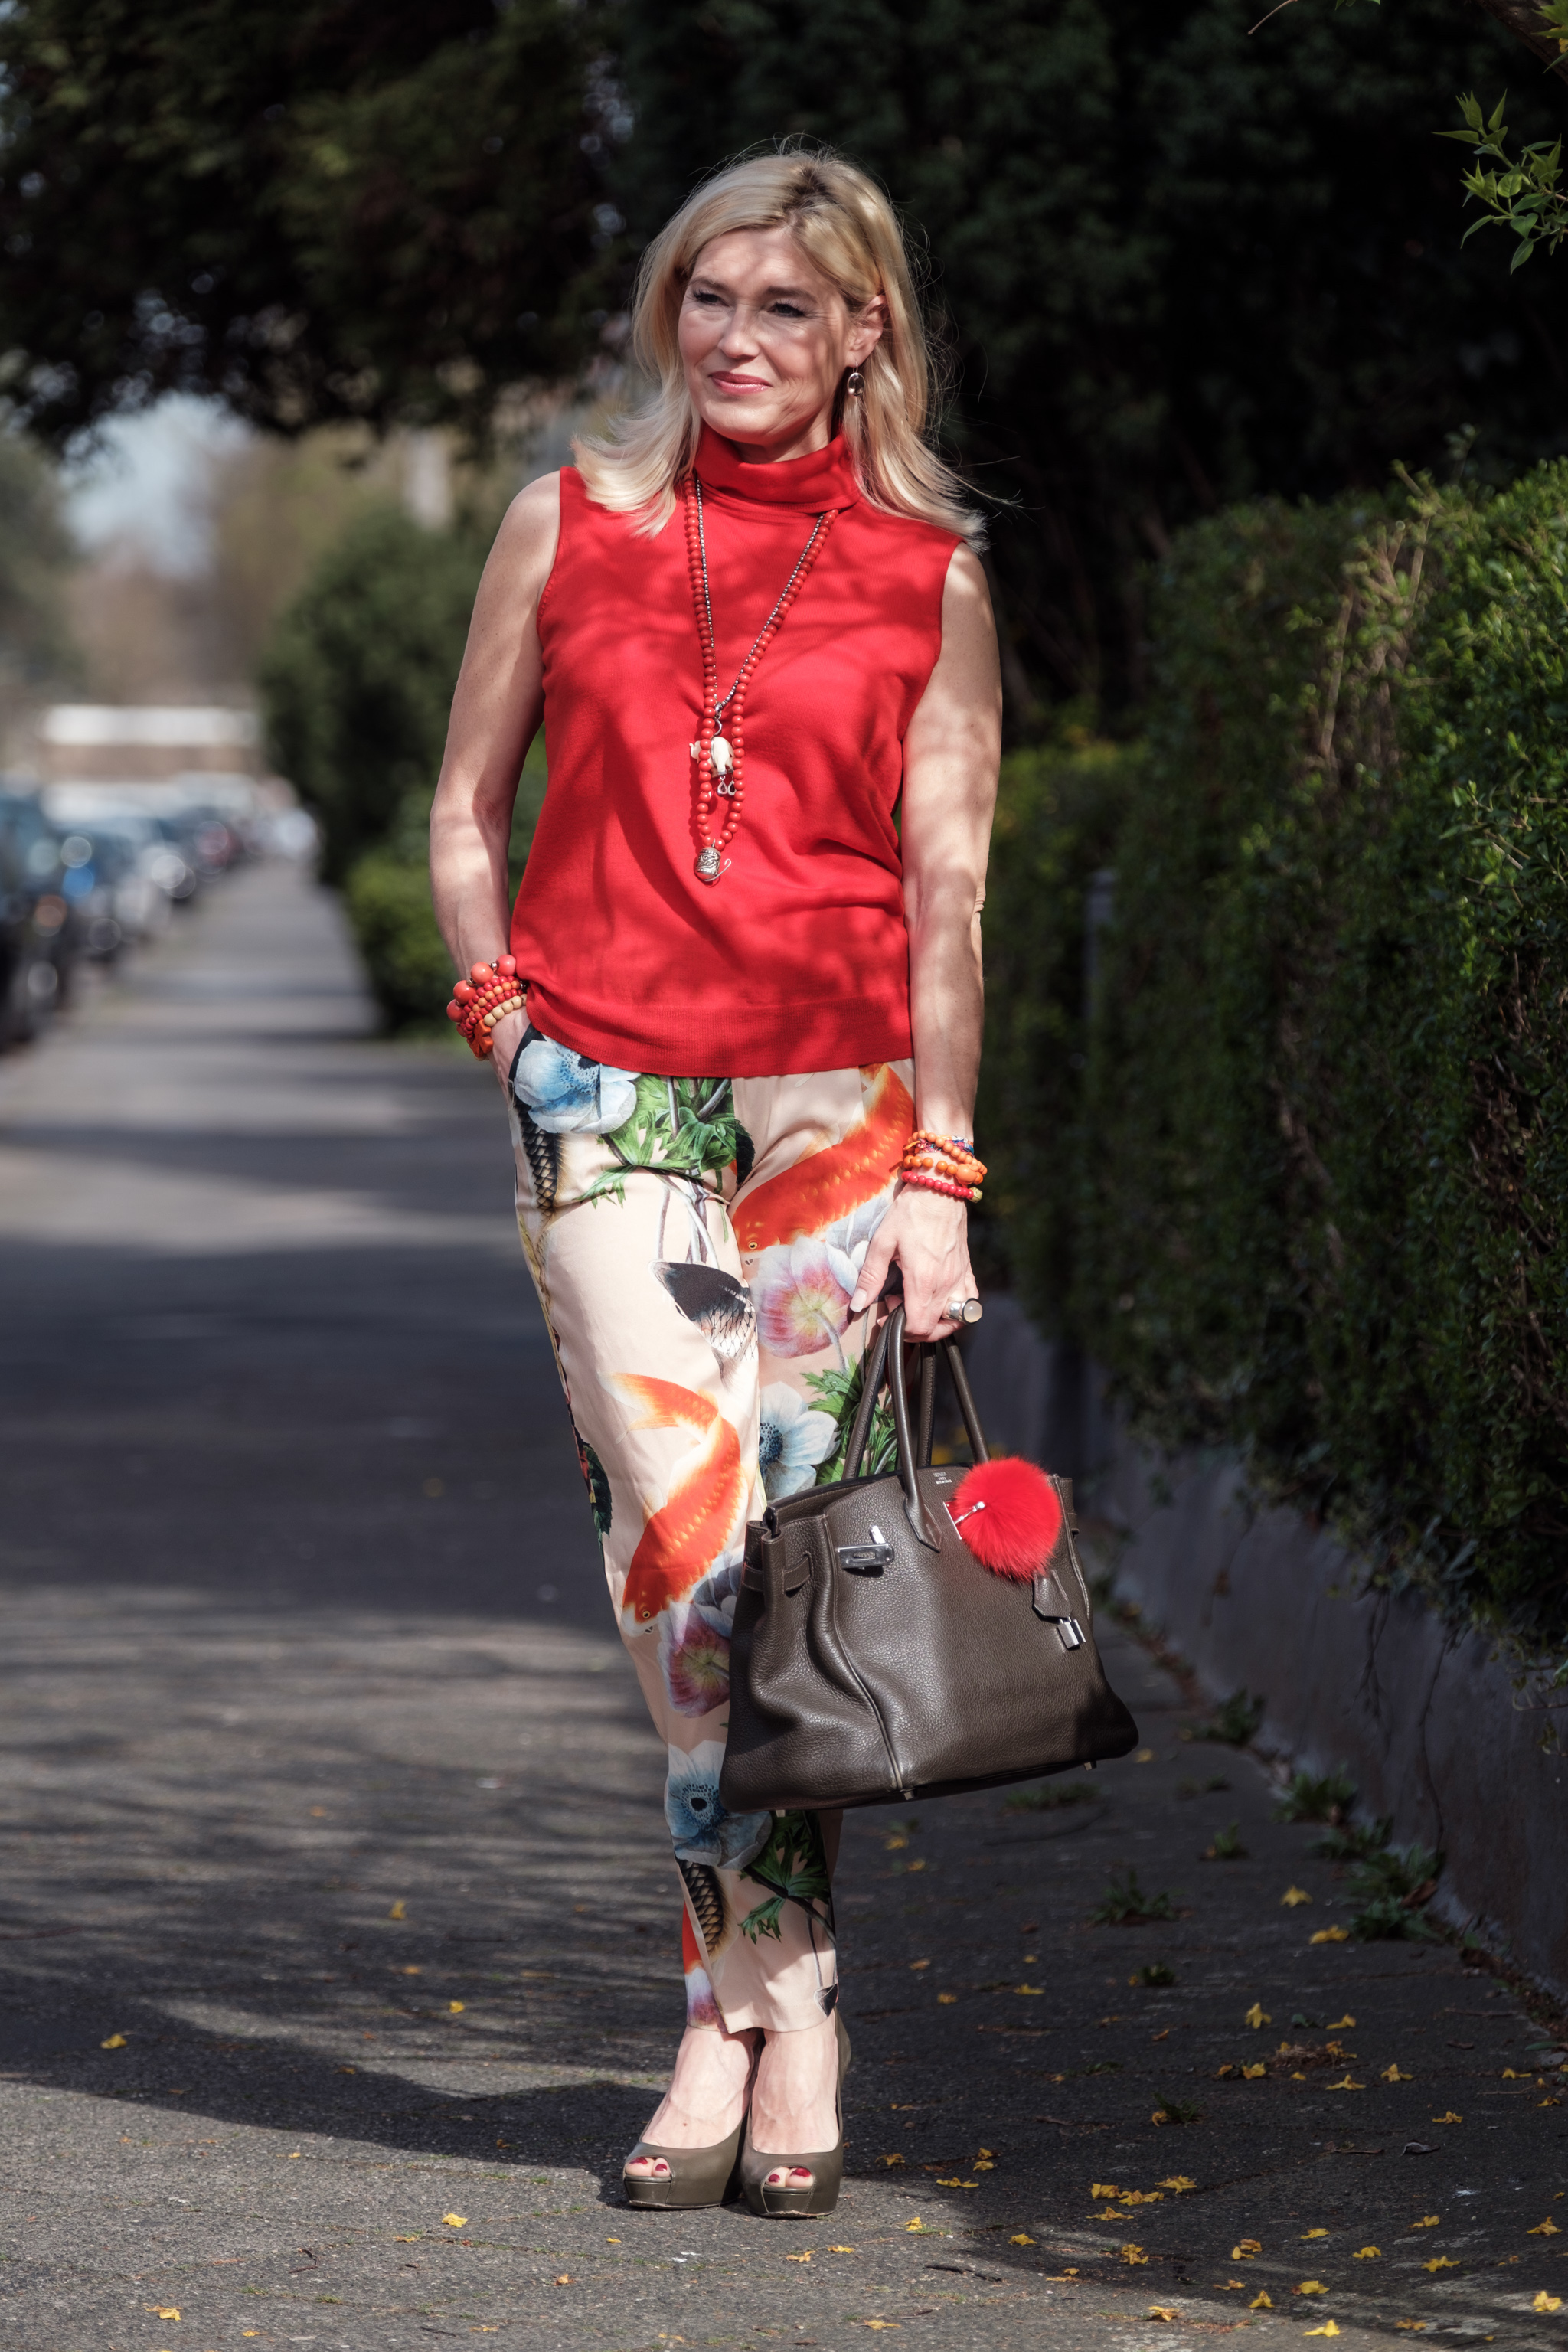 Anni Carlsson Outfit, Anni Carlsson Fashion, Anni Carlsson Mode, Anni Carlsson silk pants, Fashion-Blog, Lieblingsstil.com,